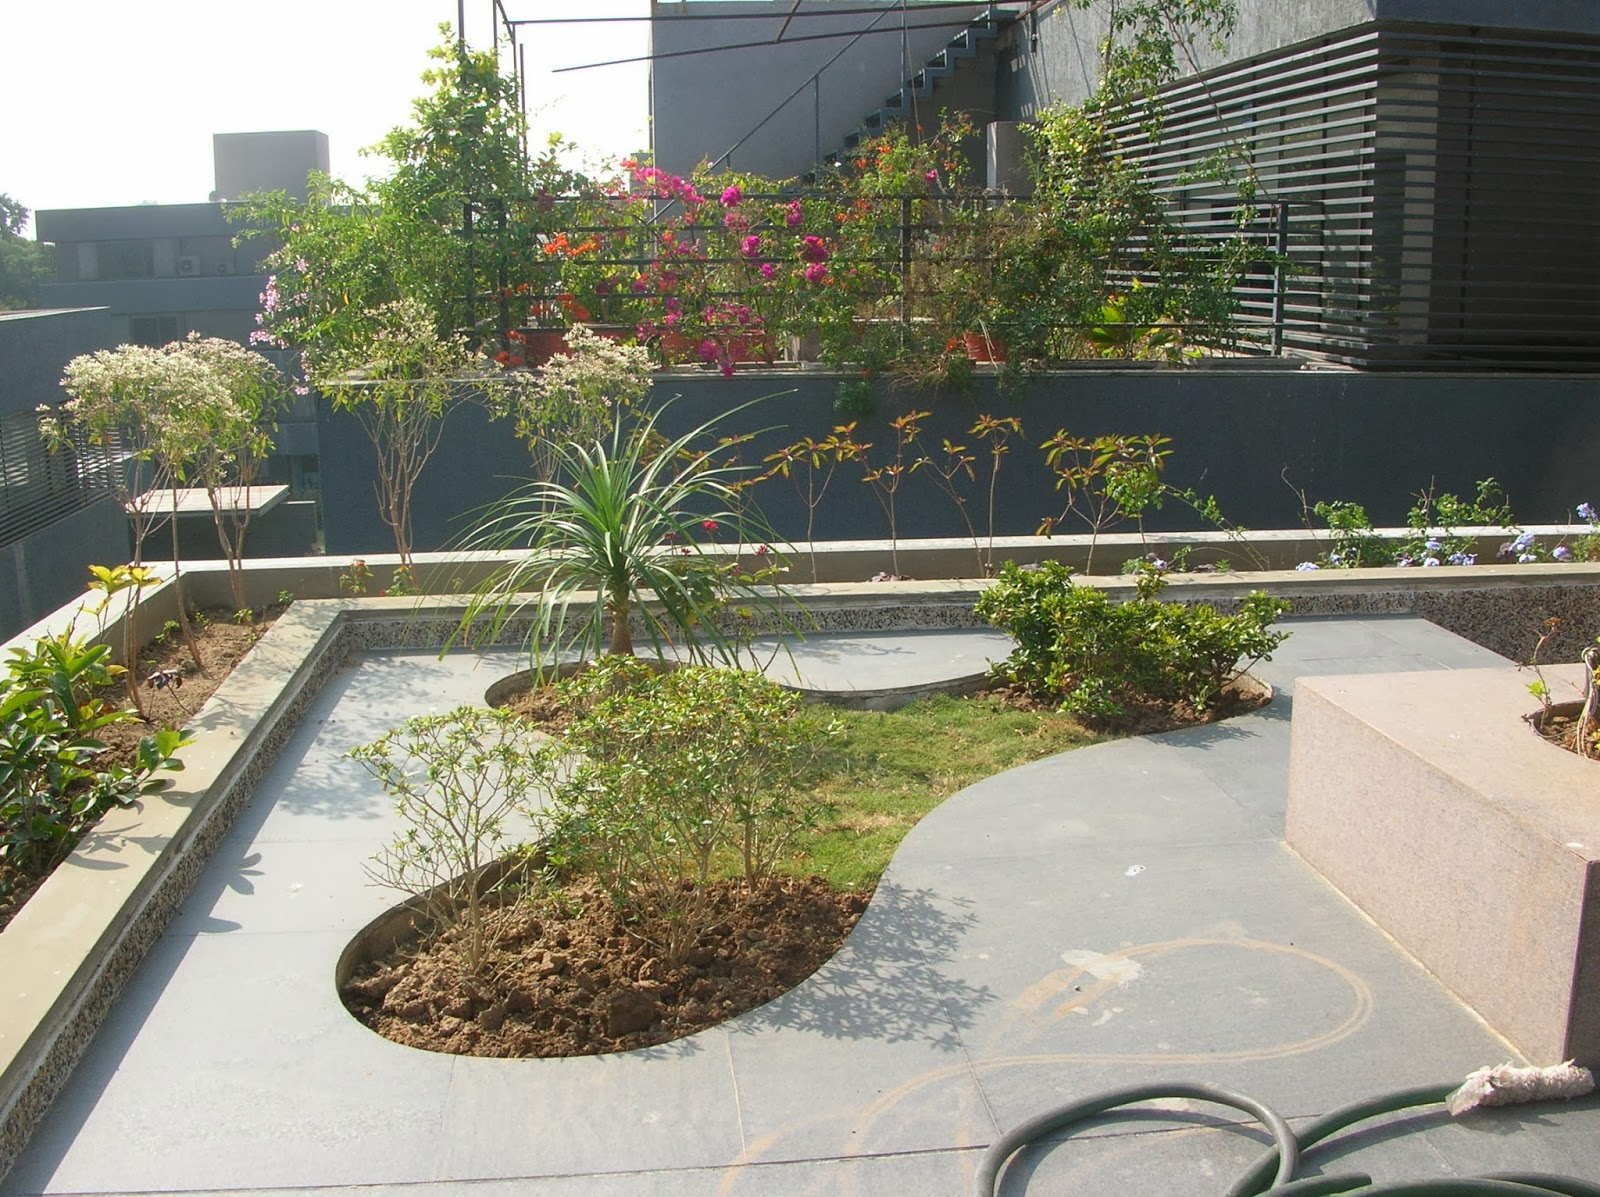 Bonsai trees and plants in ahmedabad for sale garden for Small terrace garden design ideas